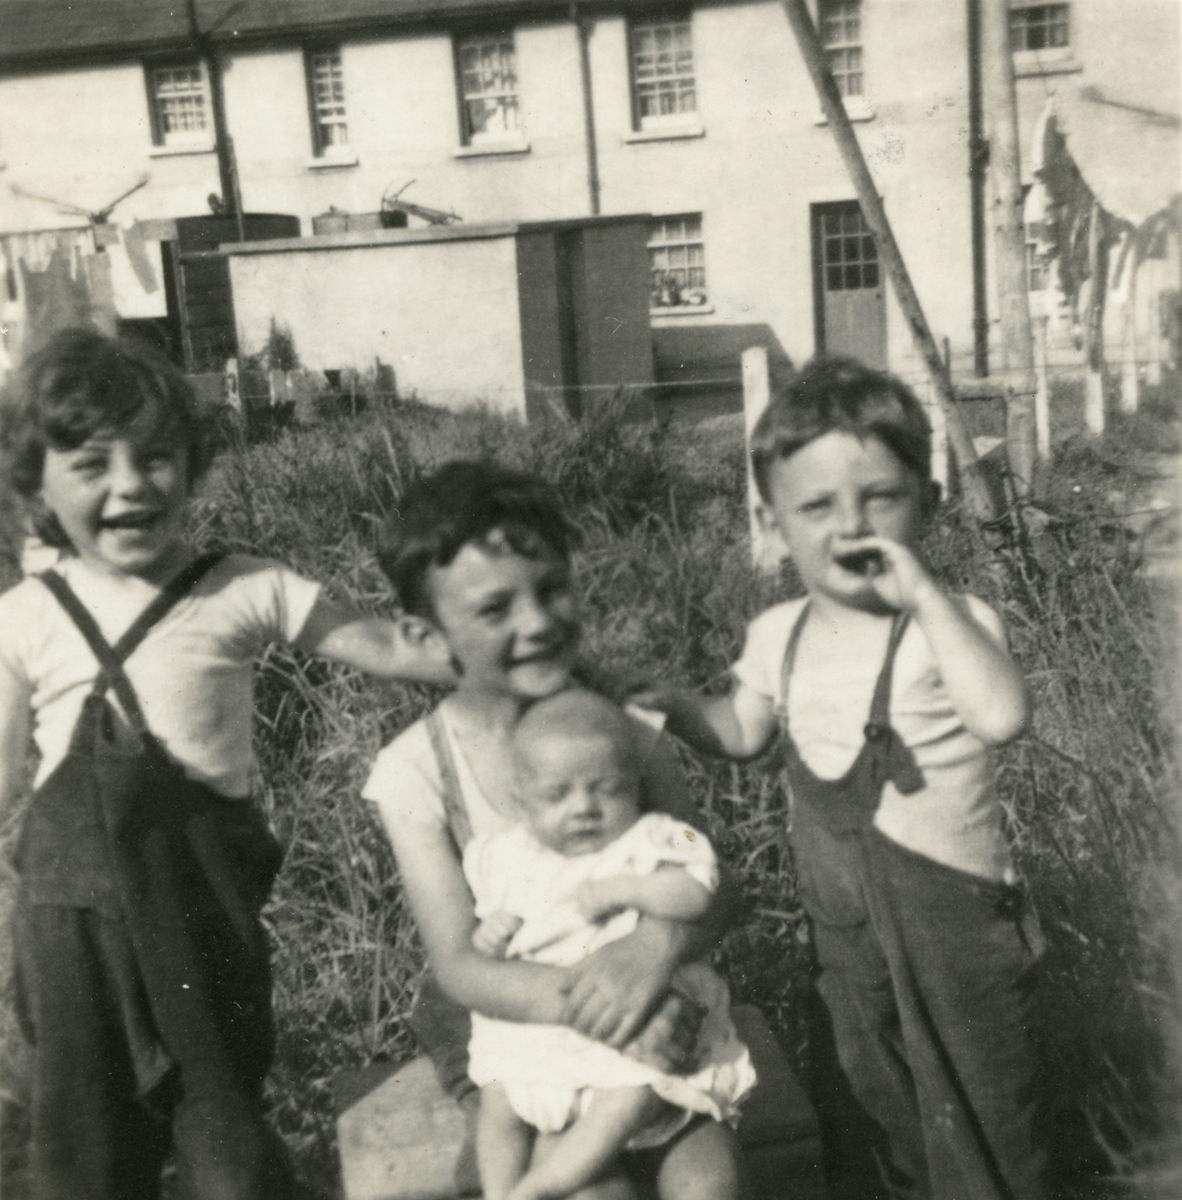 Smith // County Cork :: Children at Glavin's Terrace in Cobh